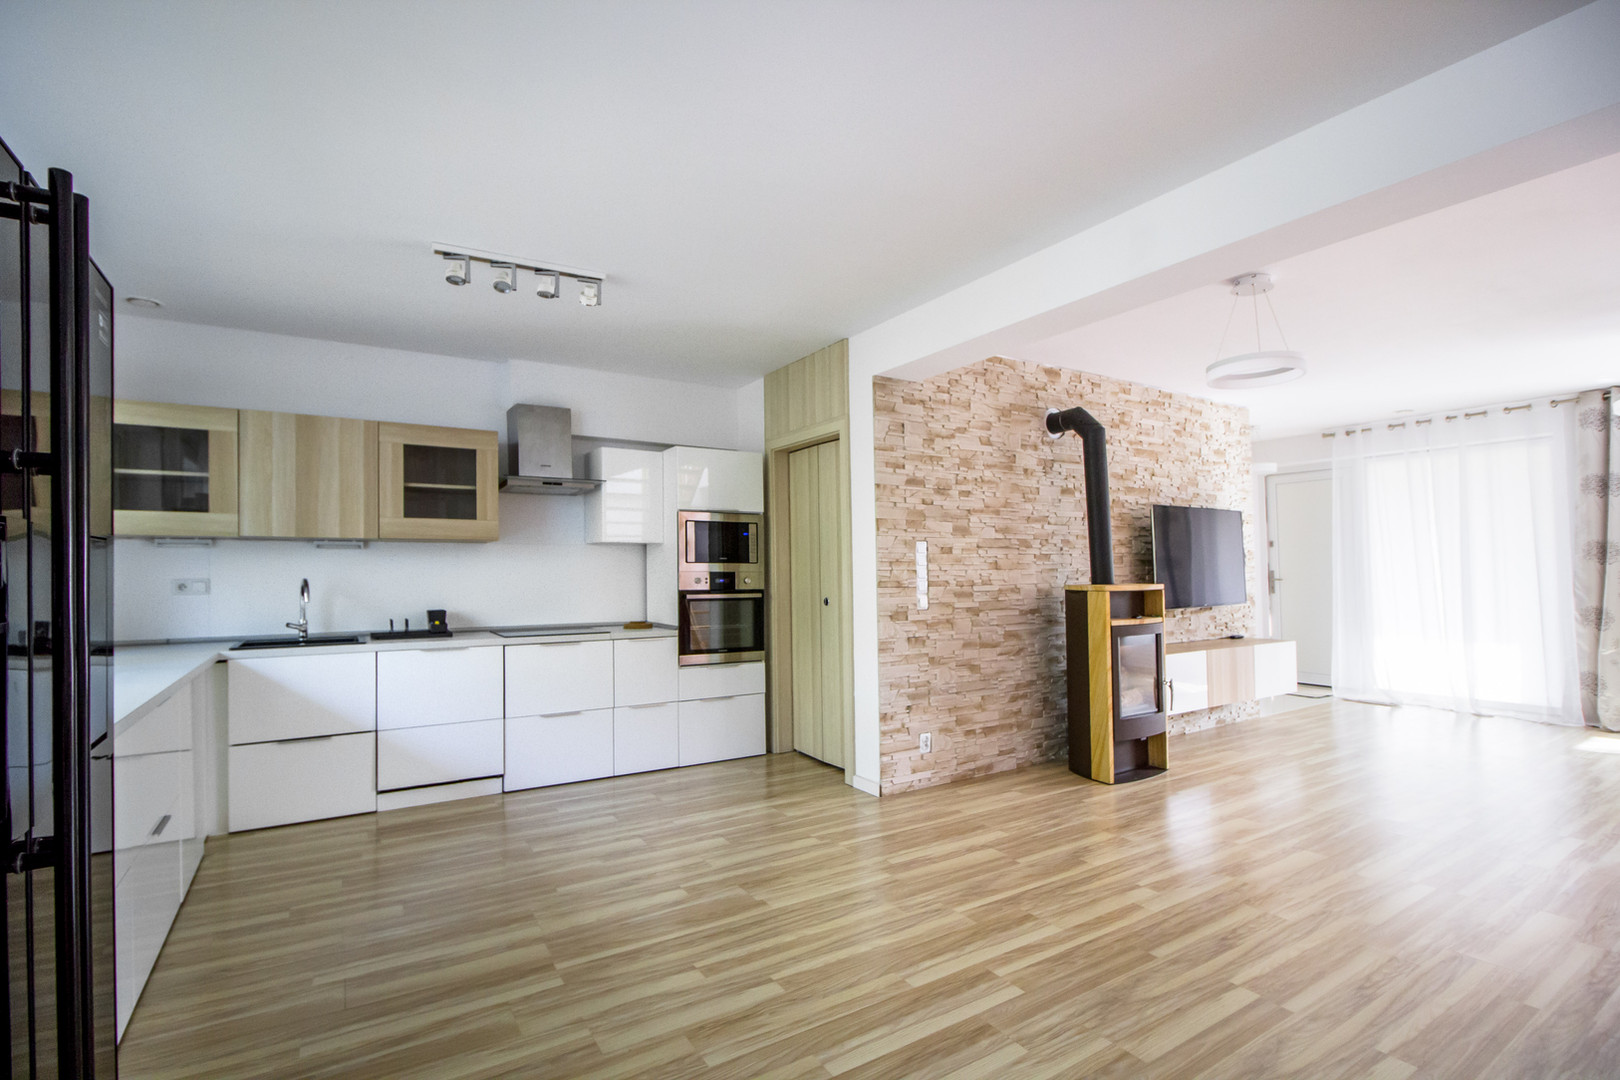 House for rent Poznan Poland (20 of 31).